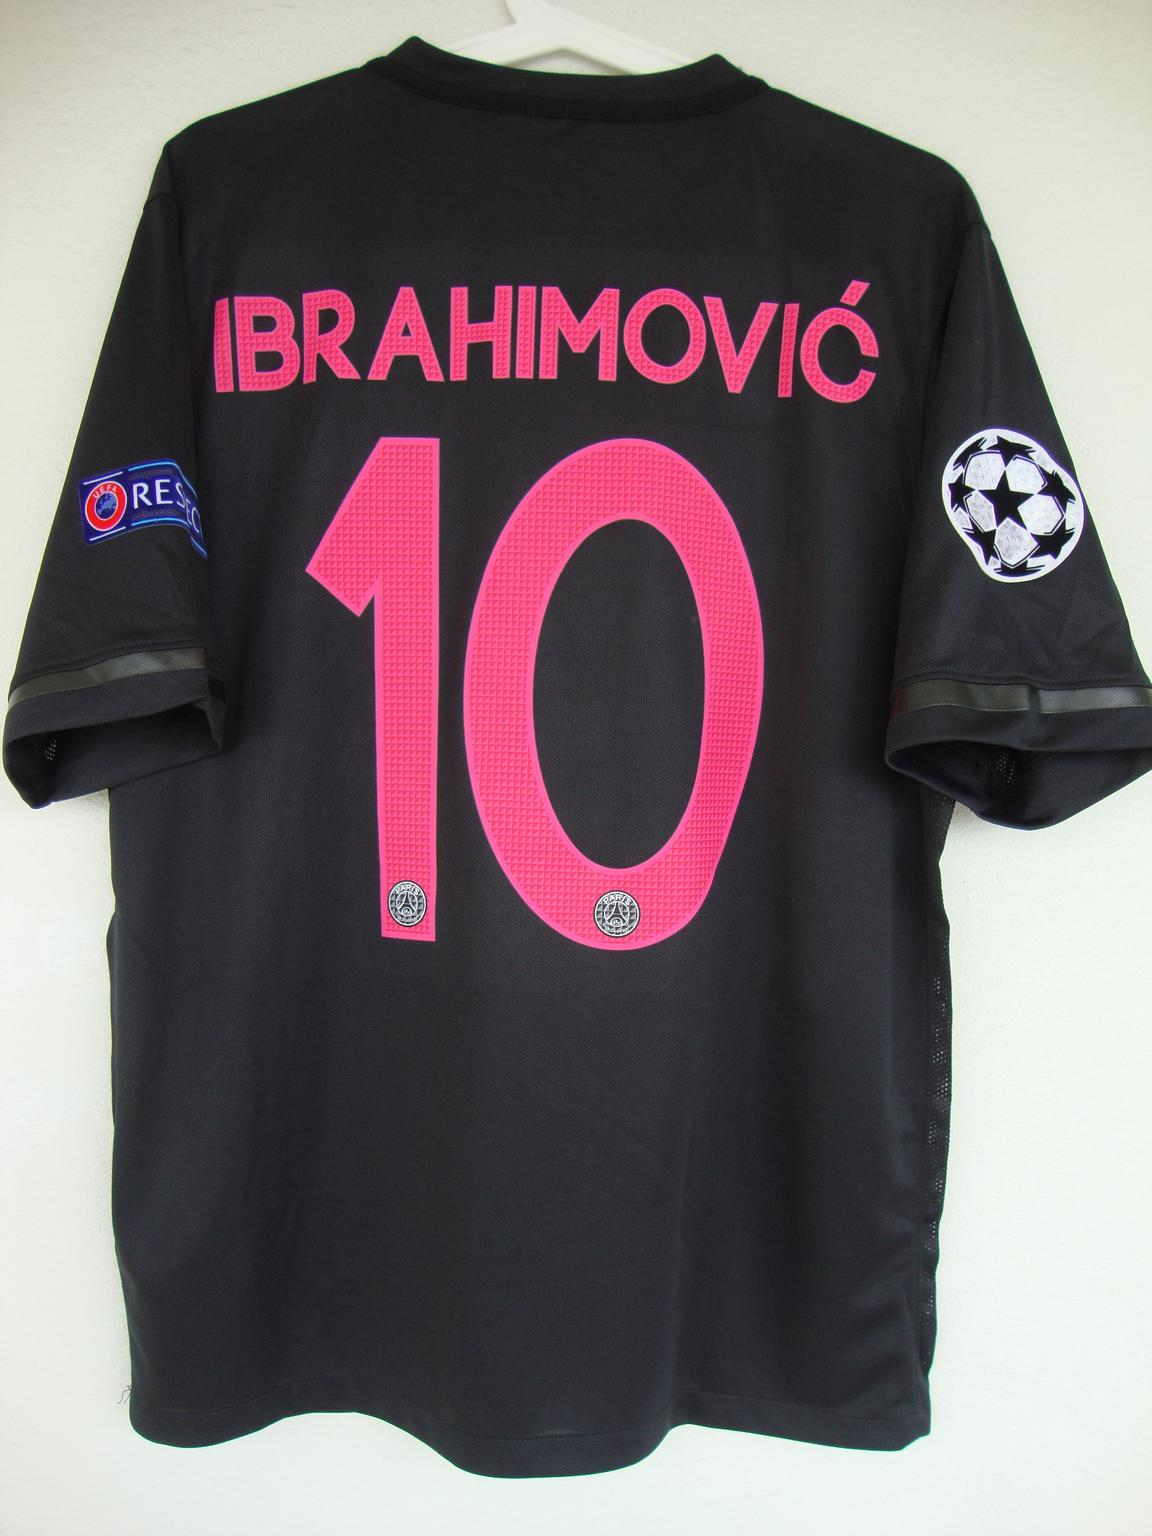 psg paris saint germain trikot ibrahimovic m